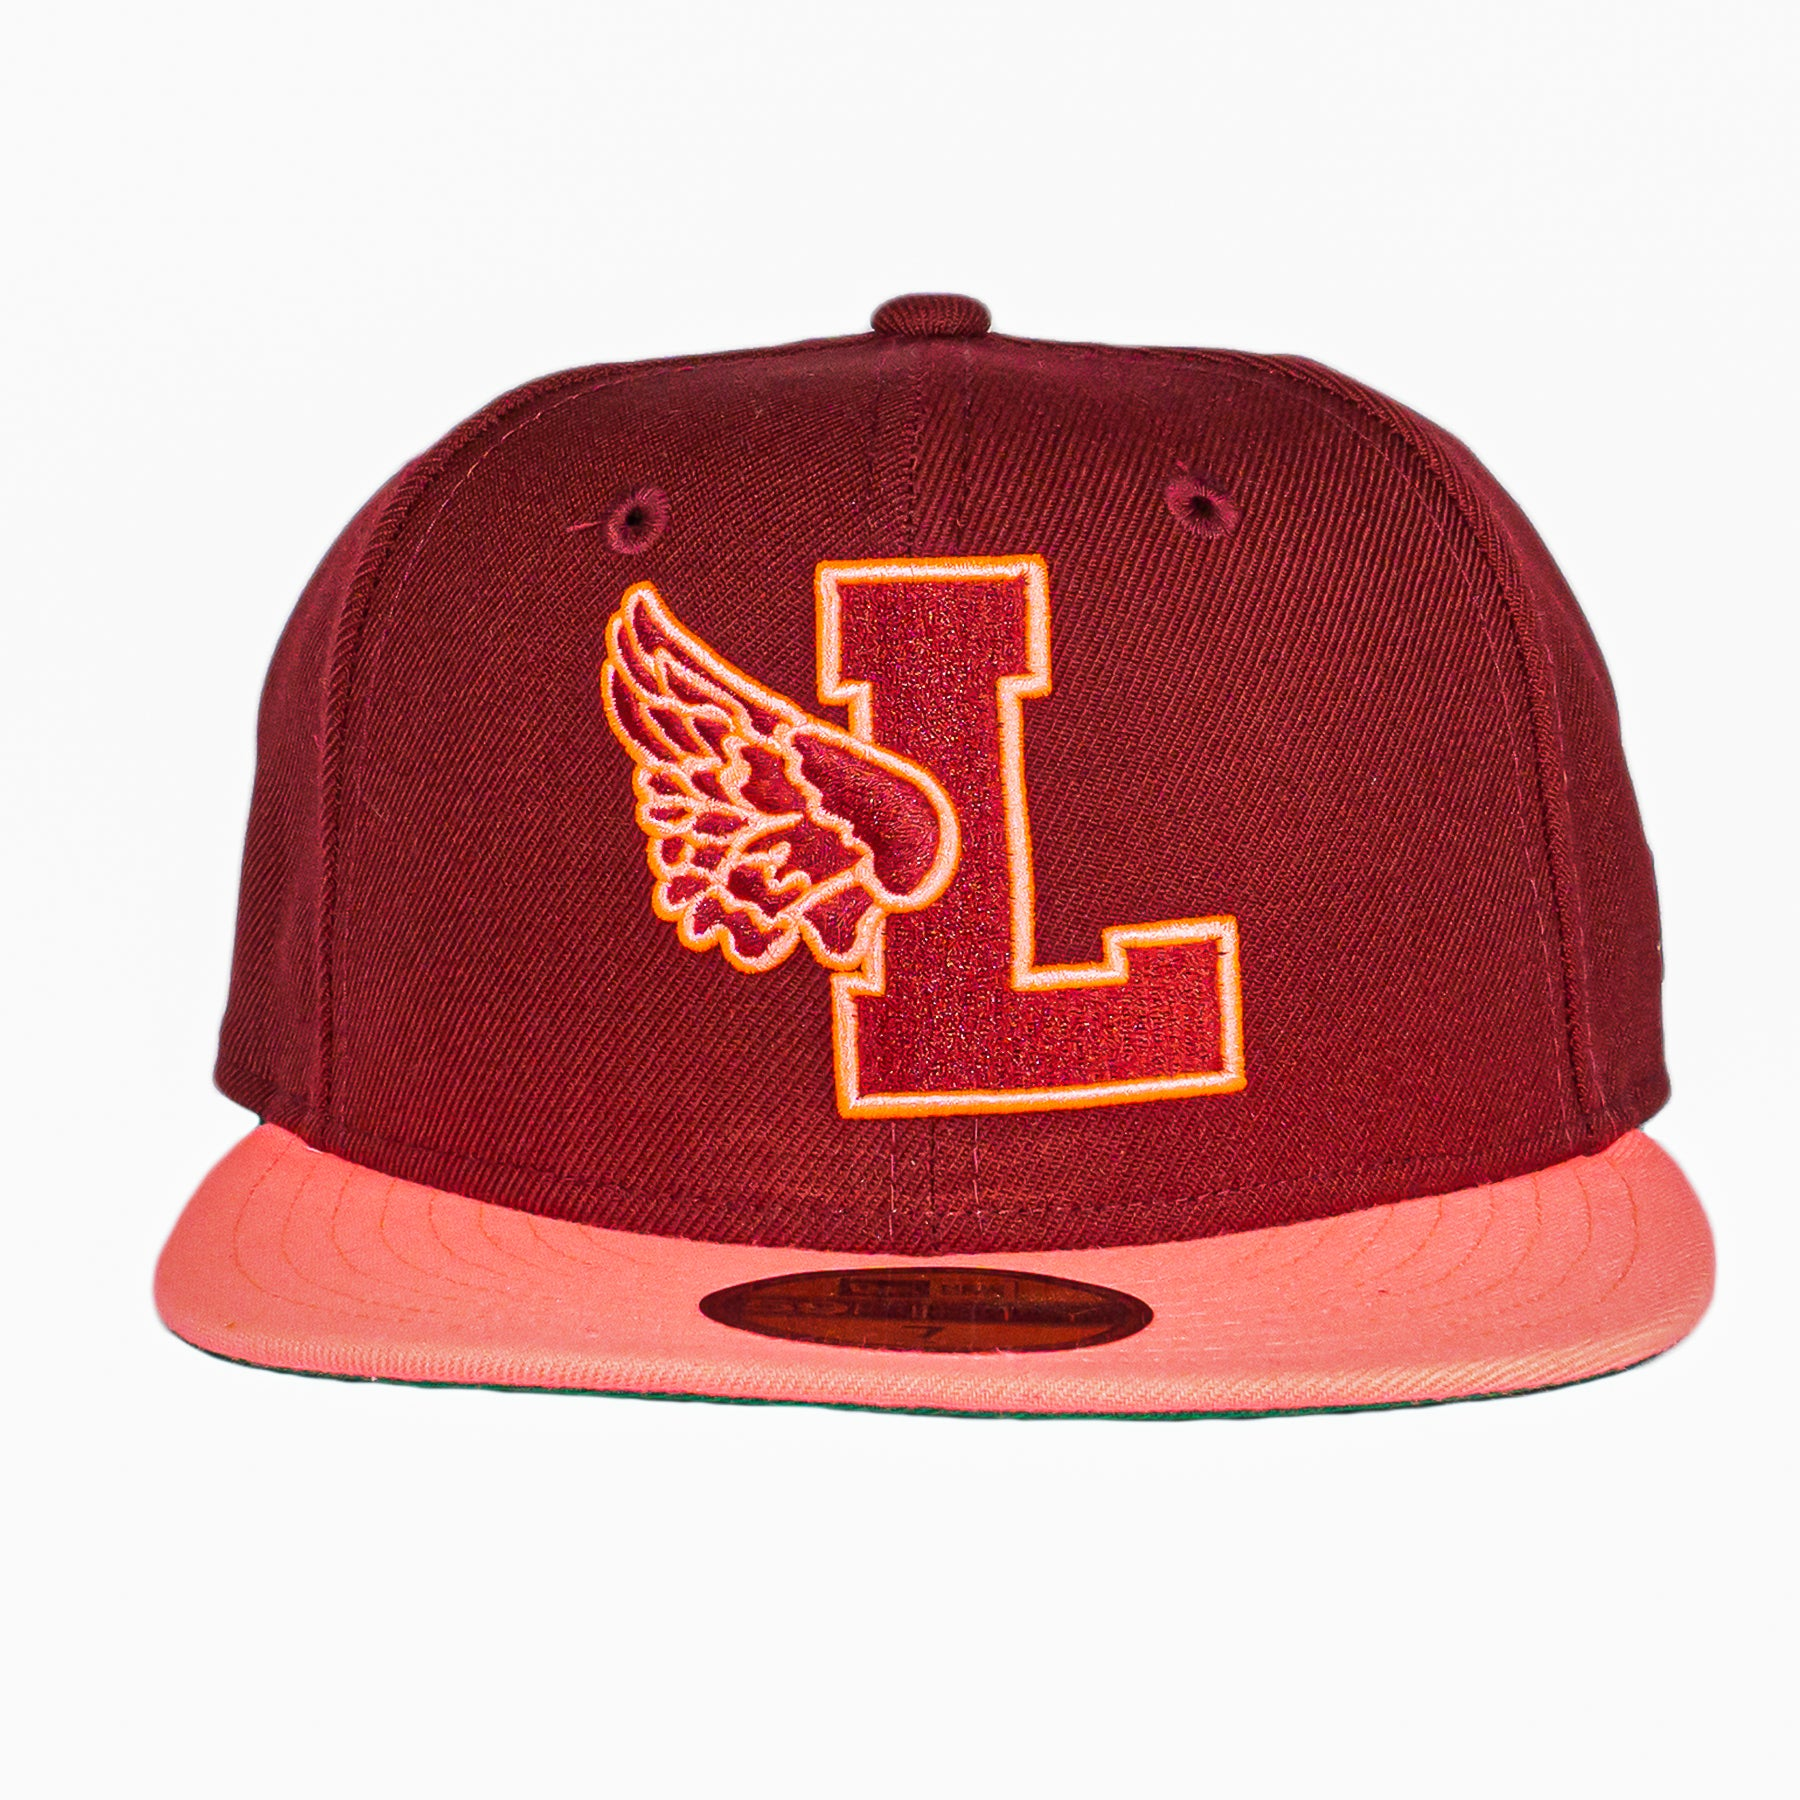 Strawberry L-Wing Fitted Hat